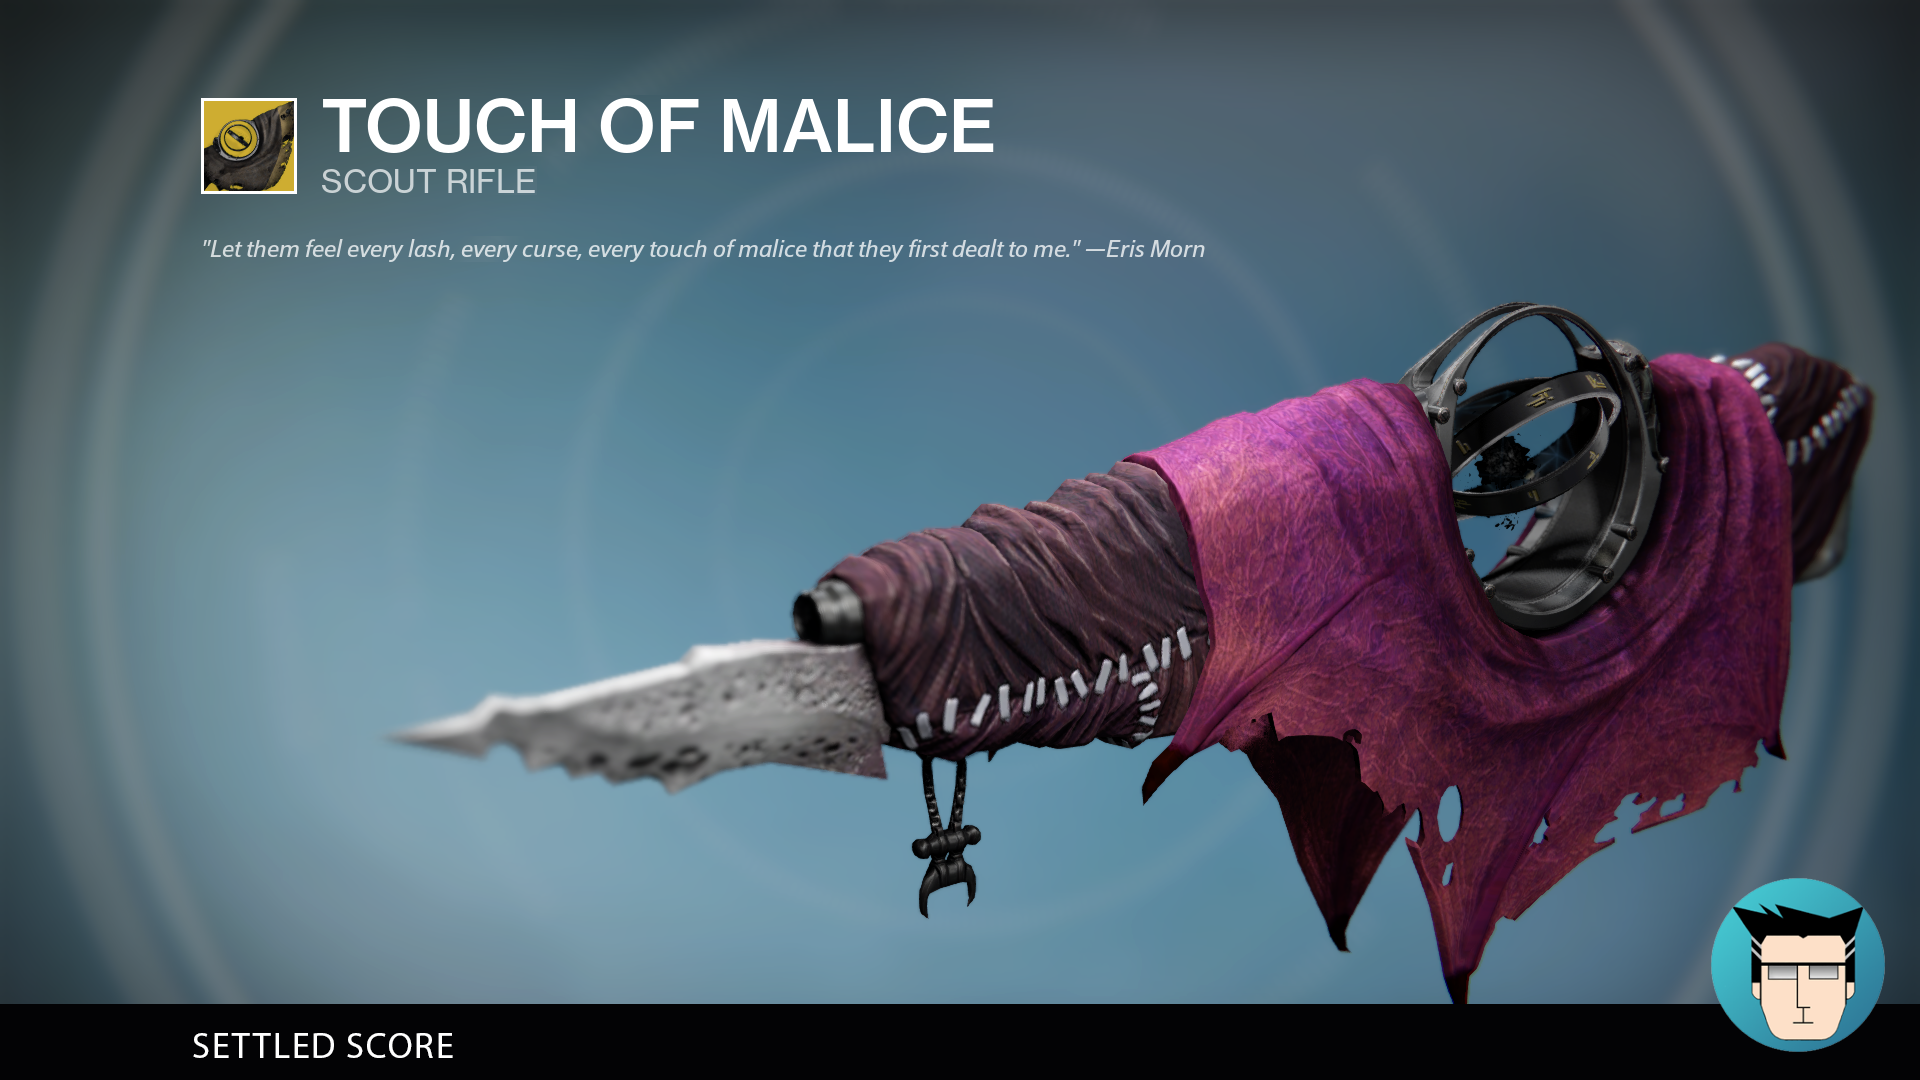 TOUCH OF MALICE | SETTLED SCORE